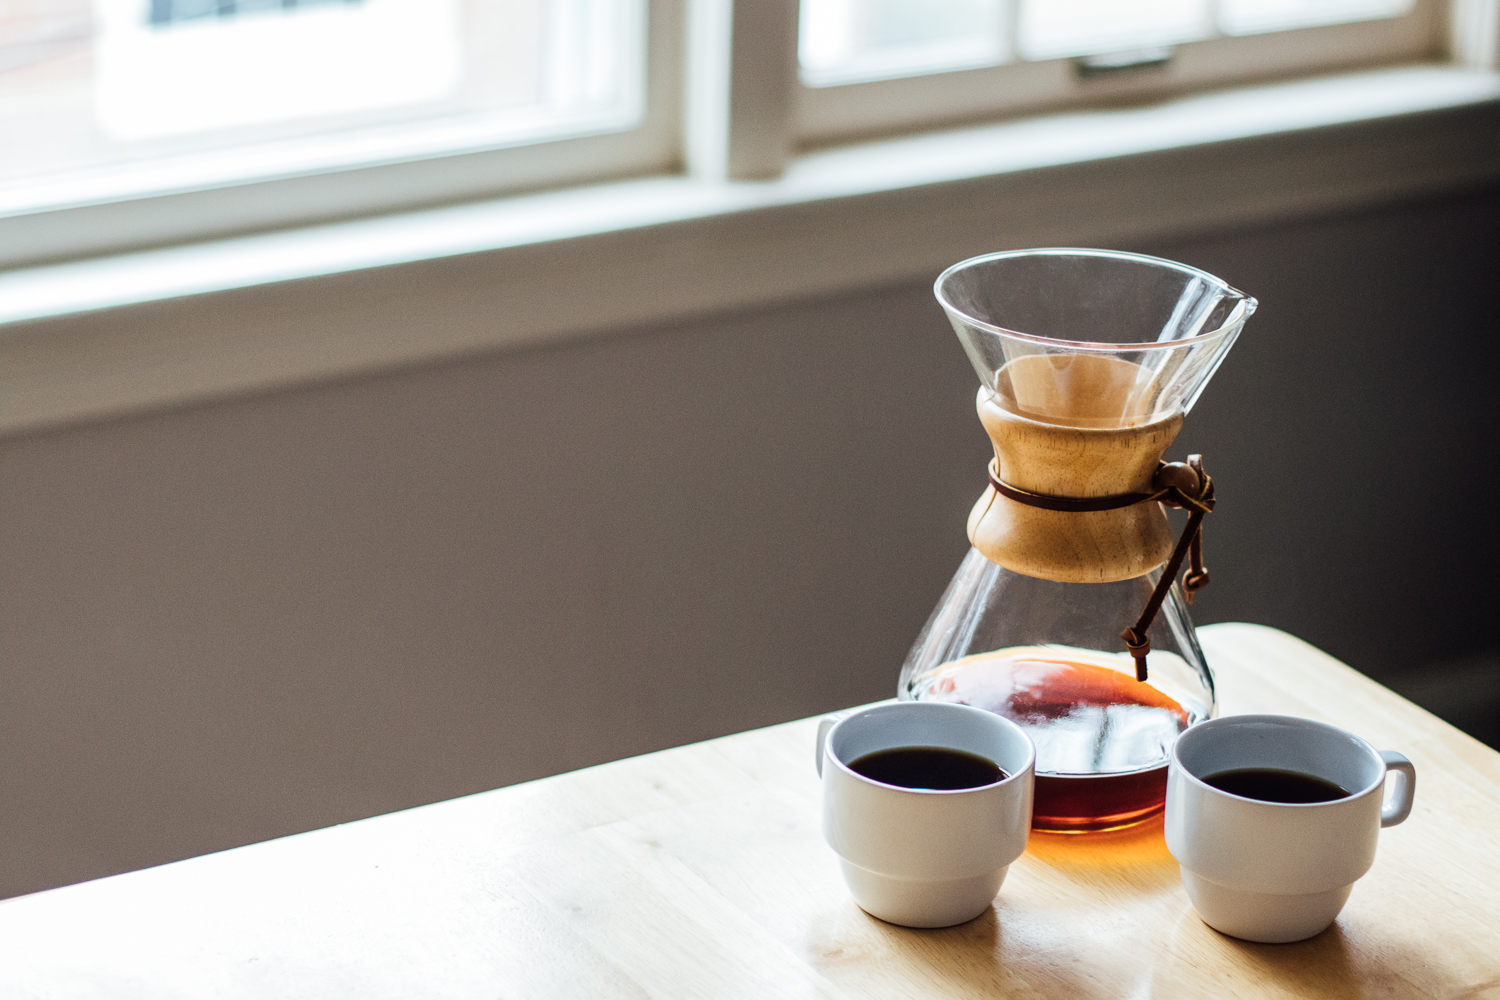 Chemex and two mugs of coffee on a table by a window.